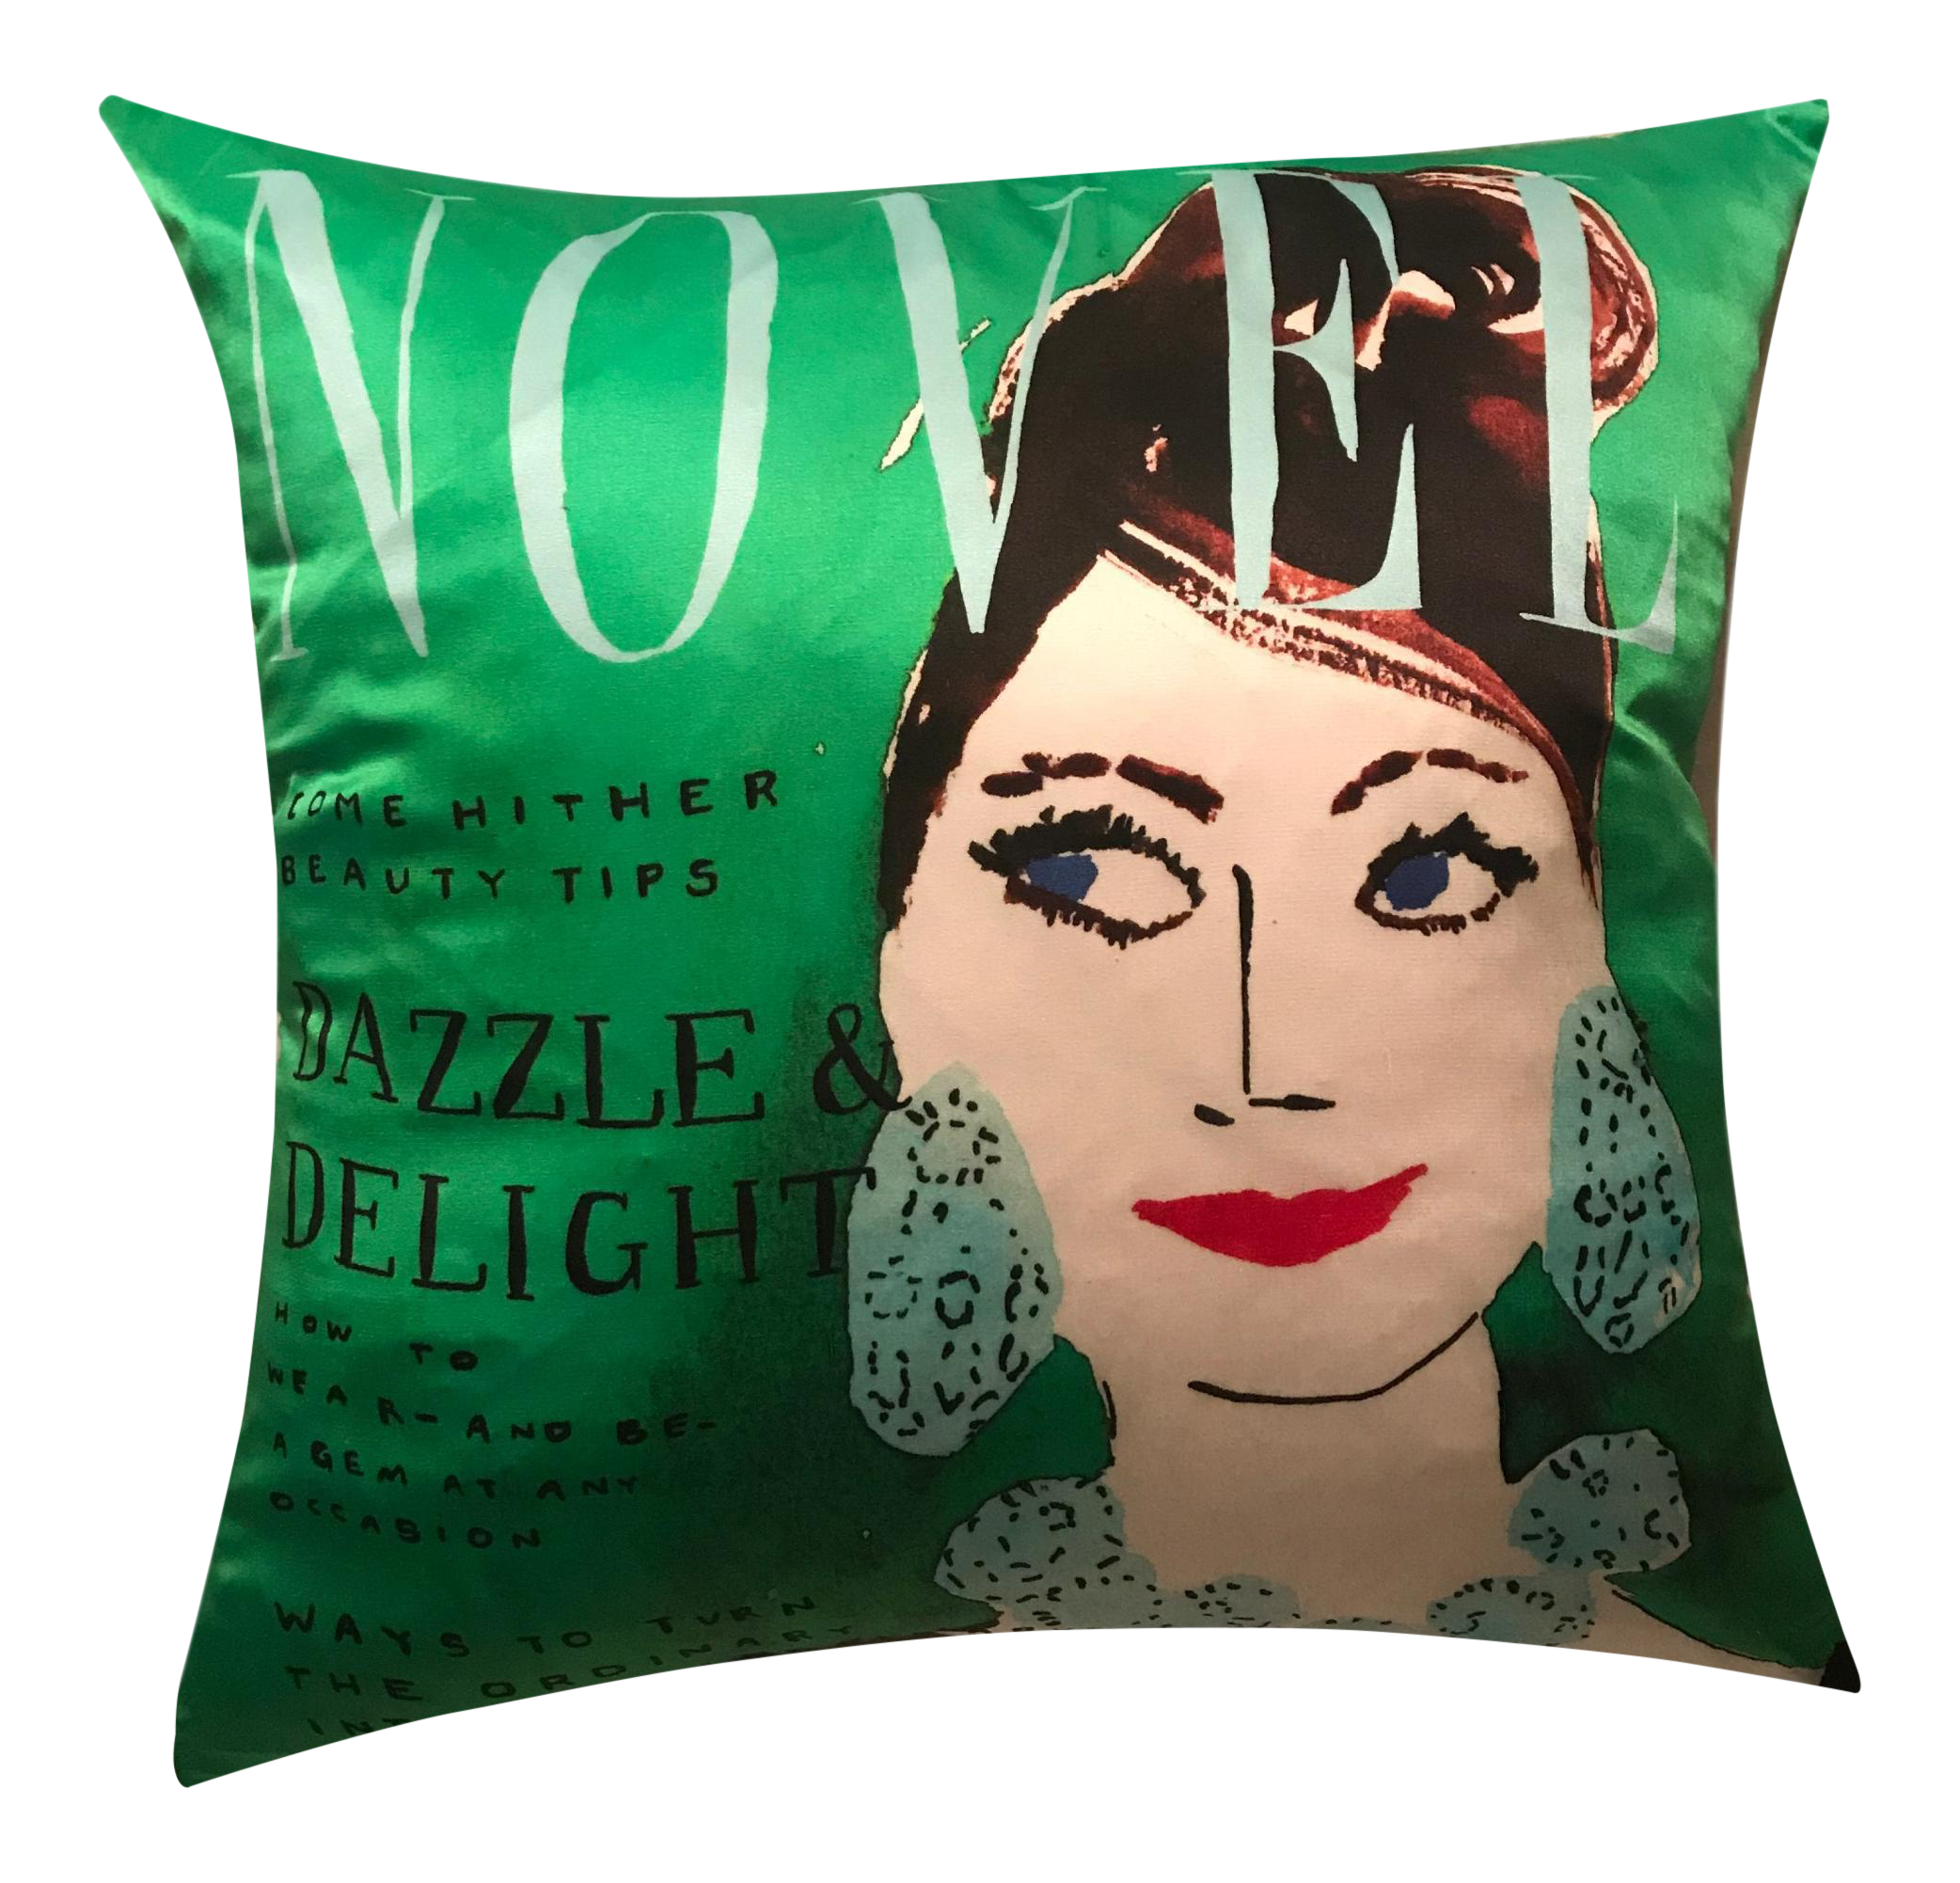 accent jewels bookmark yorkville kate spade square htm pillow pillows neutral